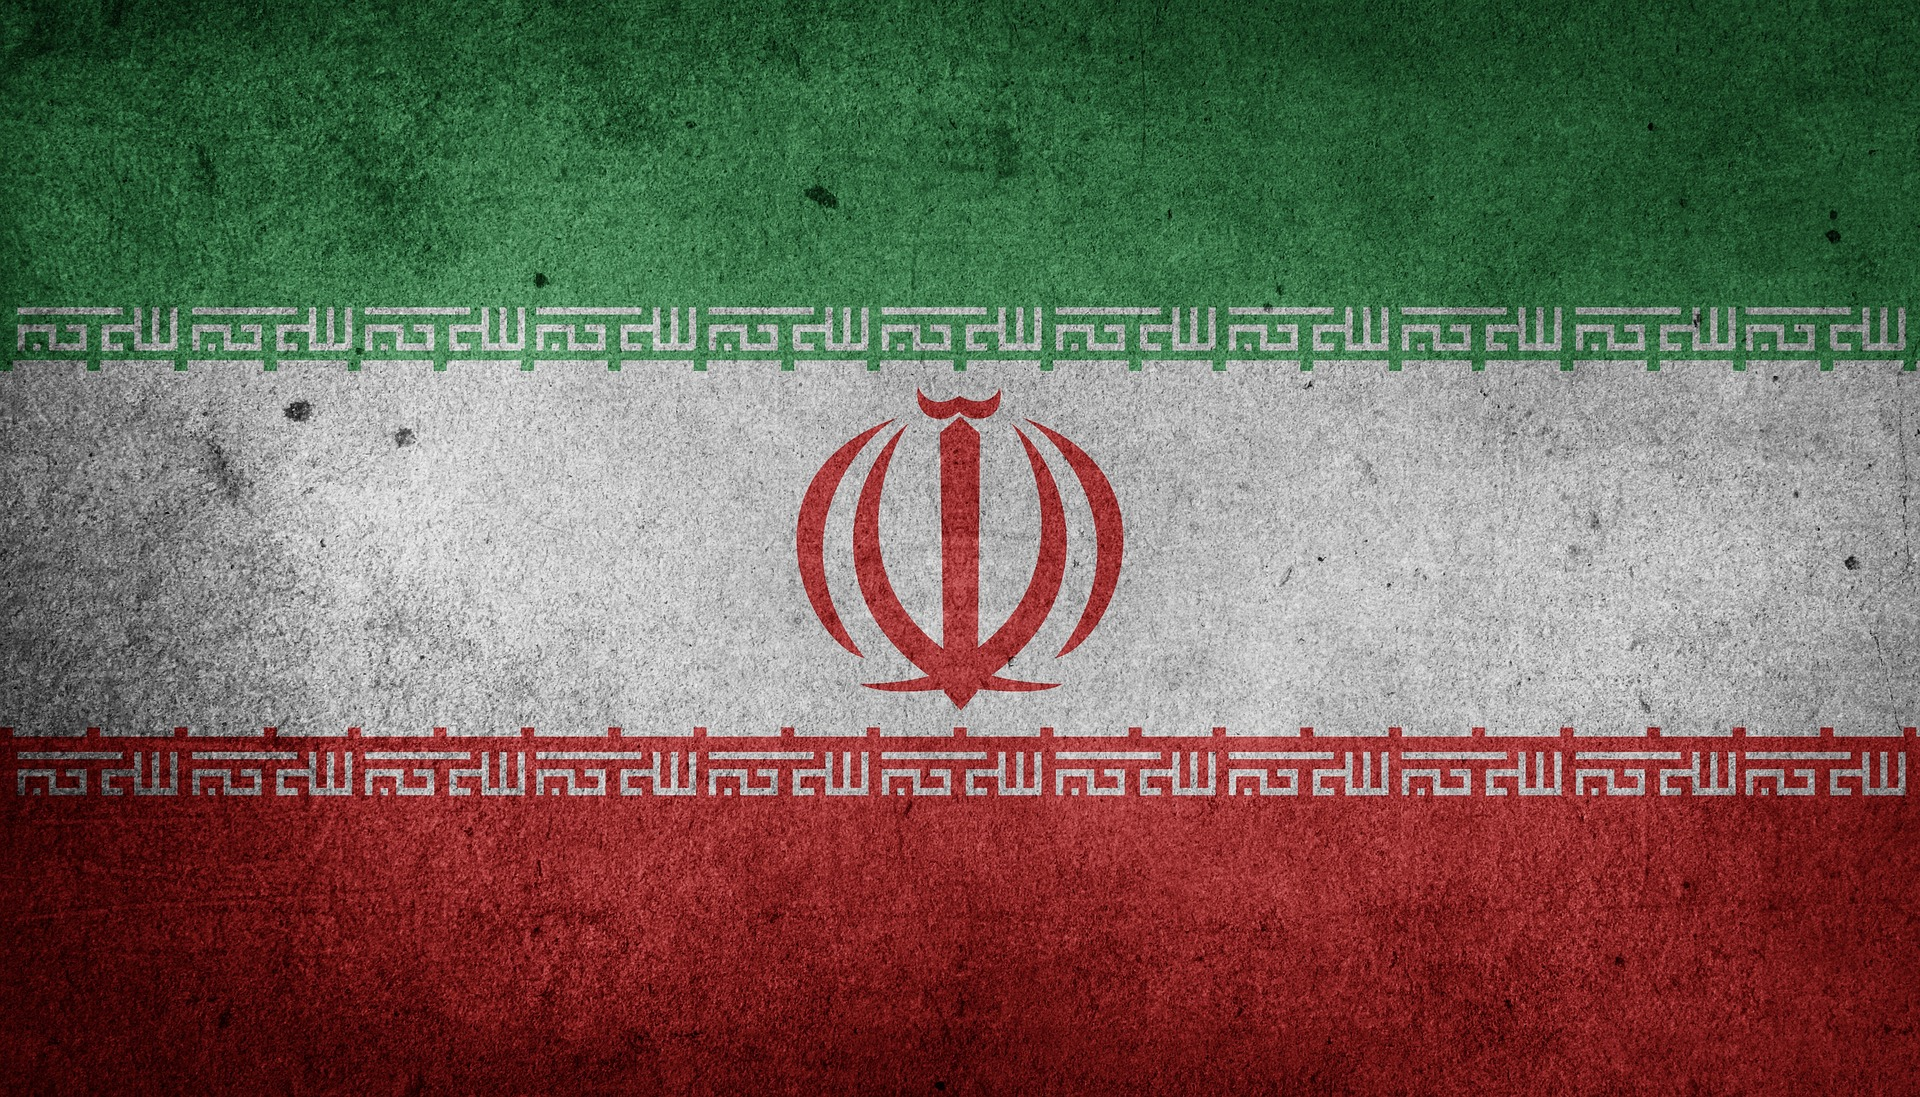 Exploiting Our Adversaries' Weaknesses – Case In Point: Iran